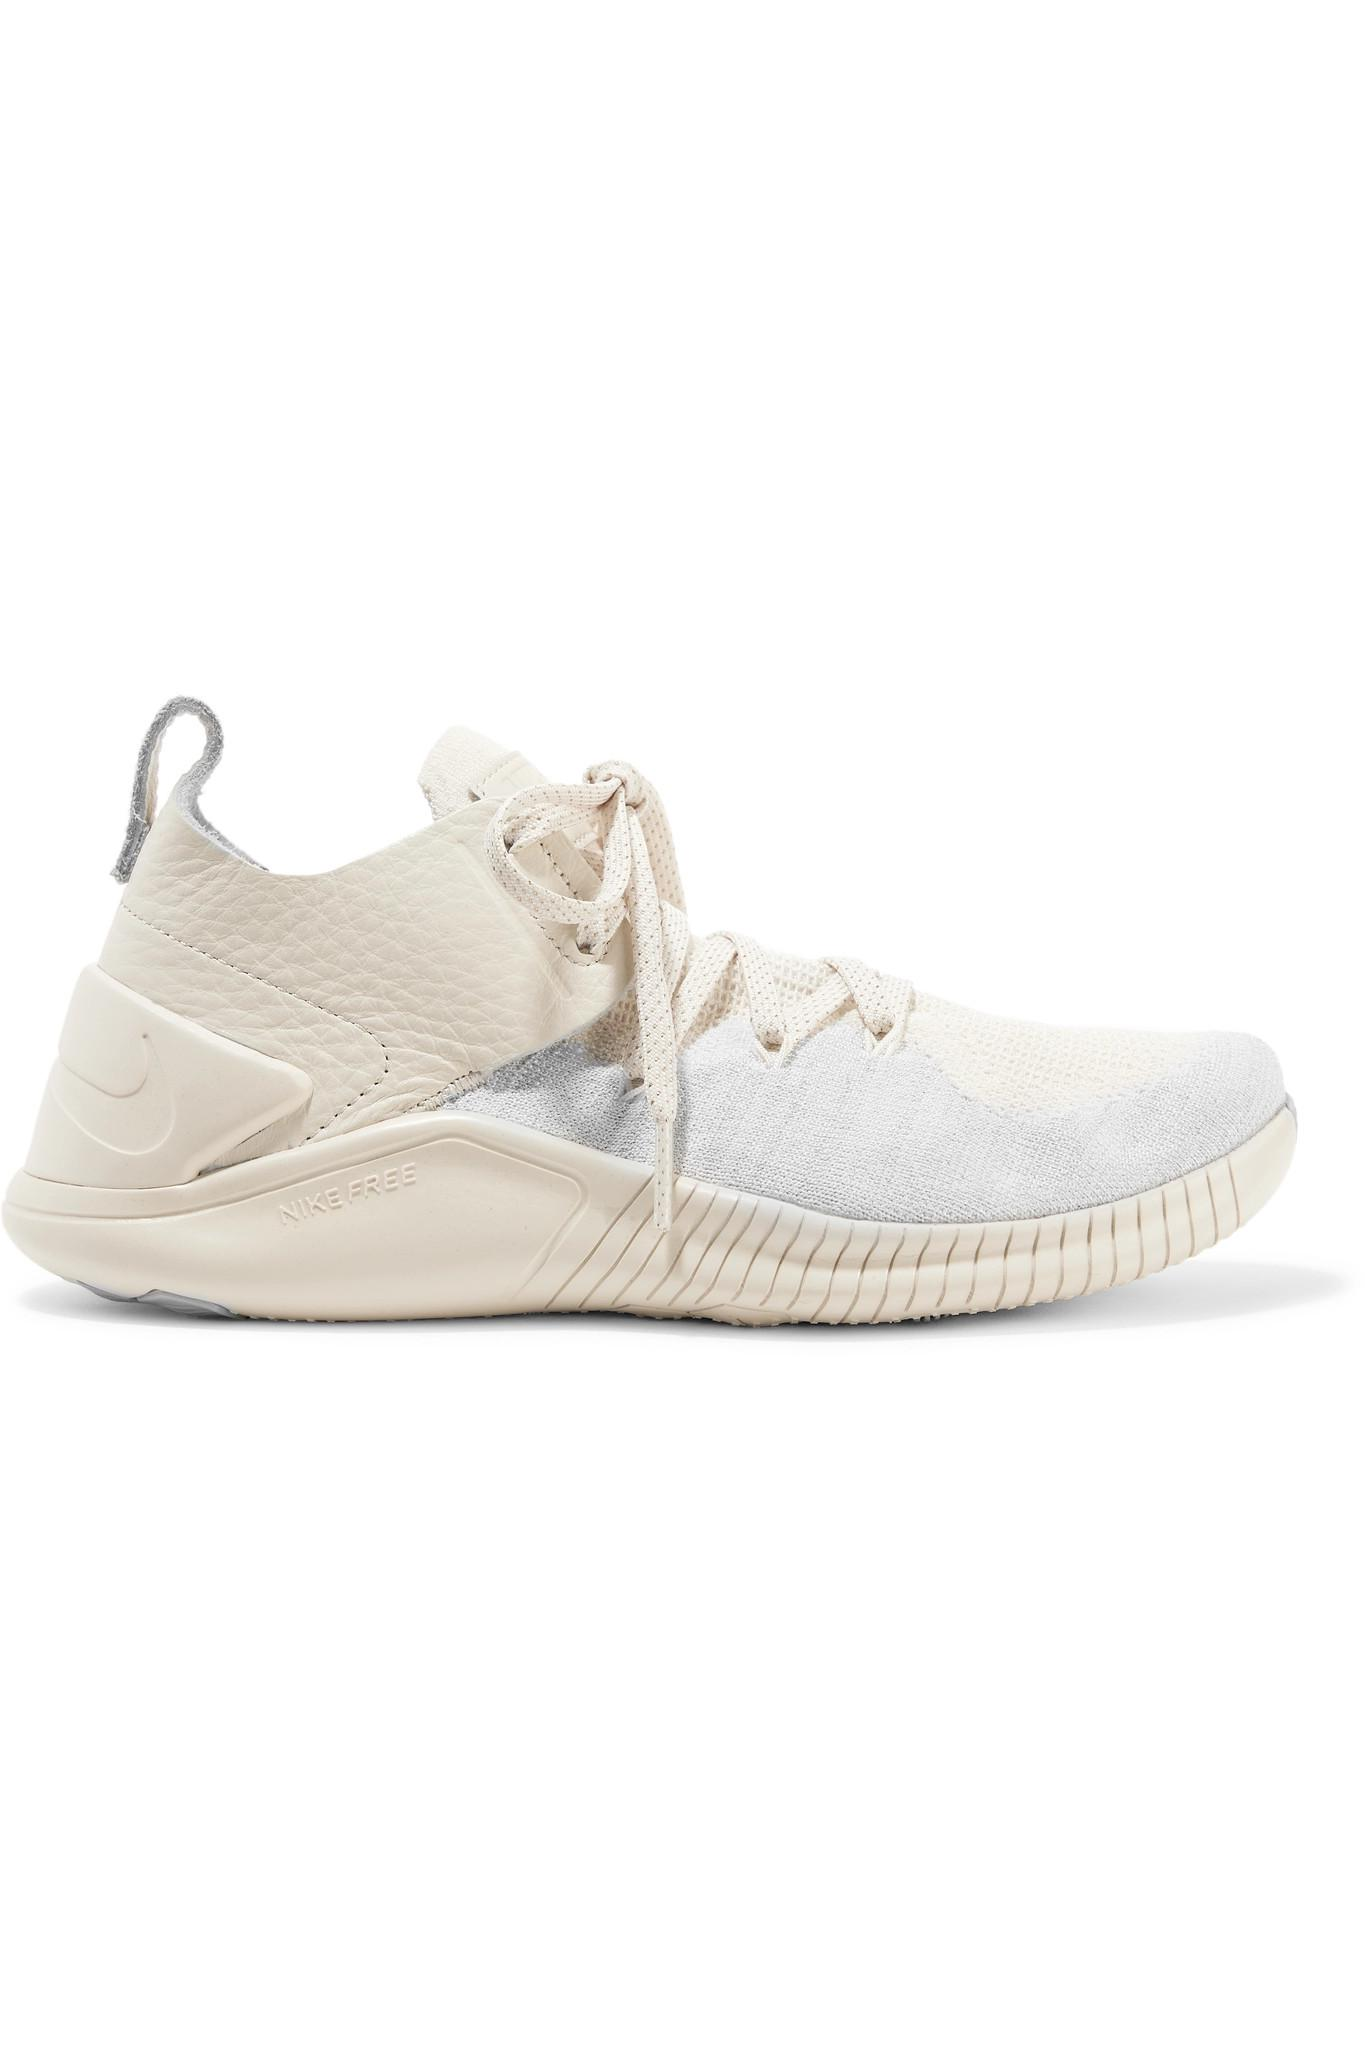 748f856e3f51 Lyst - Nike Free Tr 3 Champagne Crinkled Leather-trimmed Flyknit ...